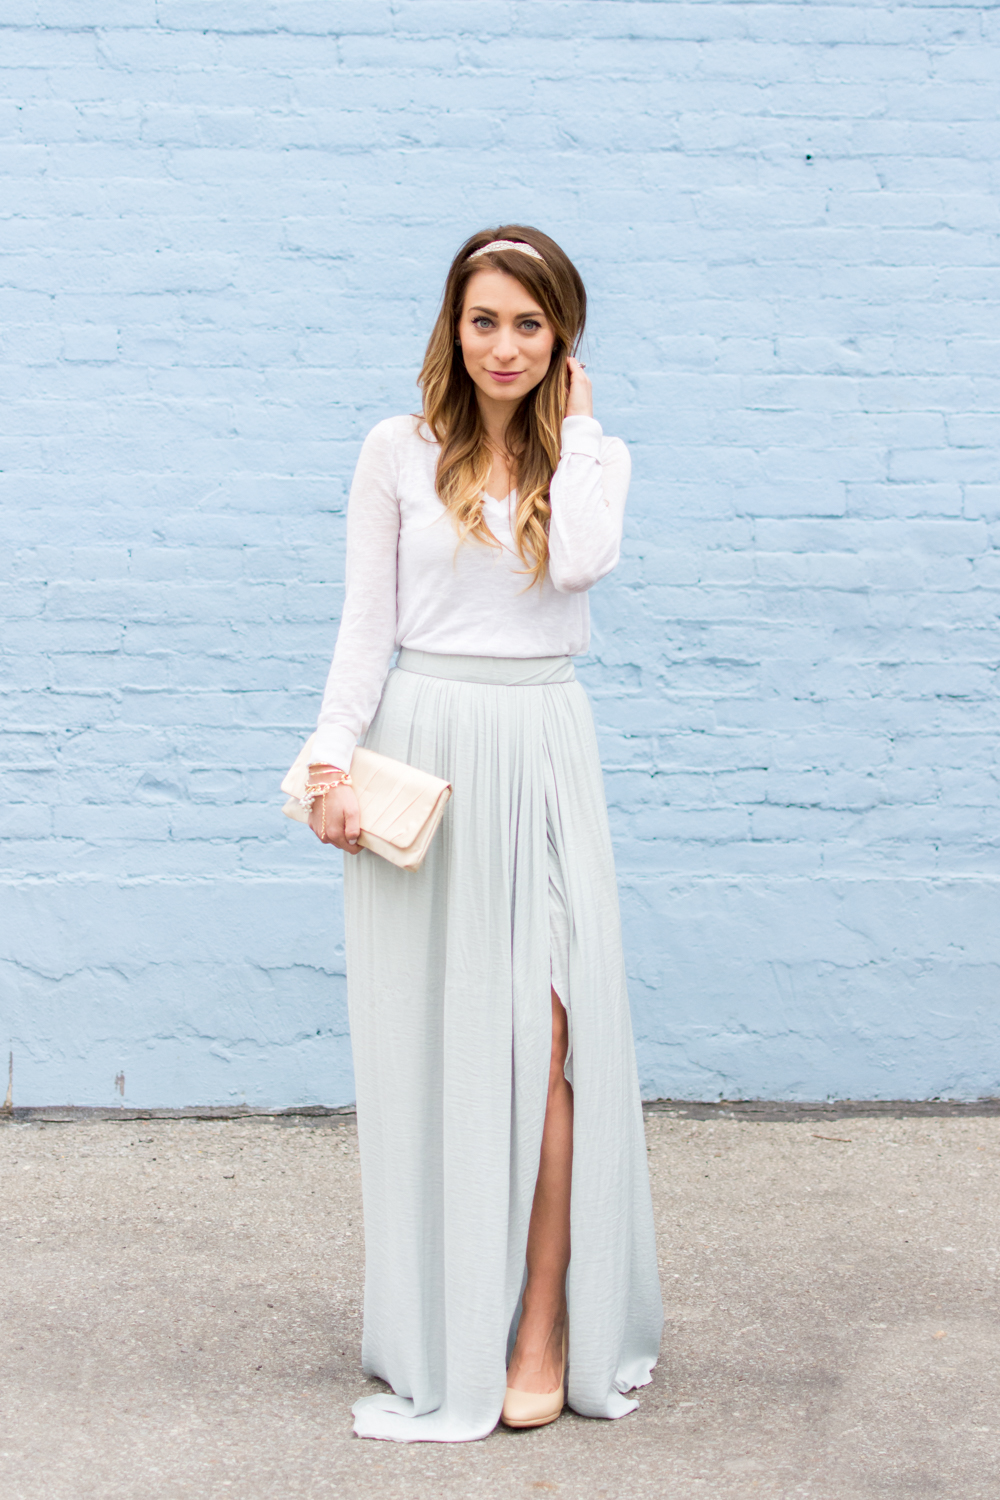 OOTD - Blue Maxi Skirt in Winter | La Petite Noob | A Toronto ...